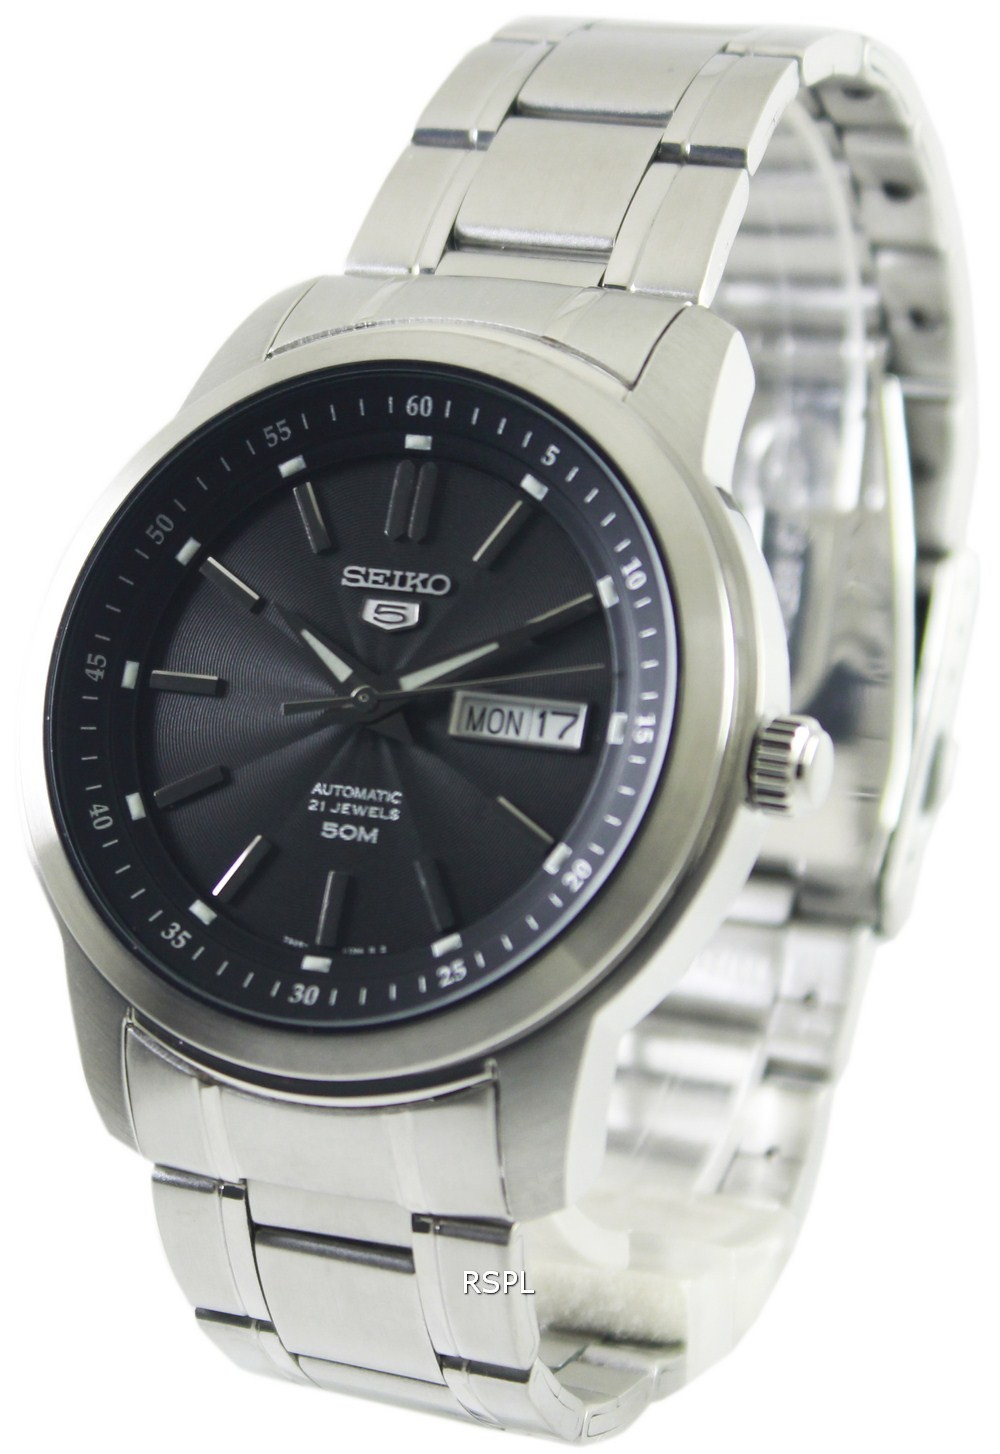 Details about Seiko 5 Automatic 21 Jewels SNKM87K1 SNKM87K Mens Watch 49b804e7fff